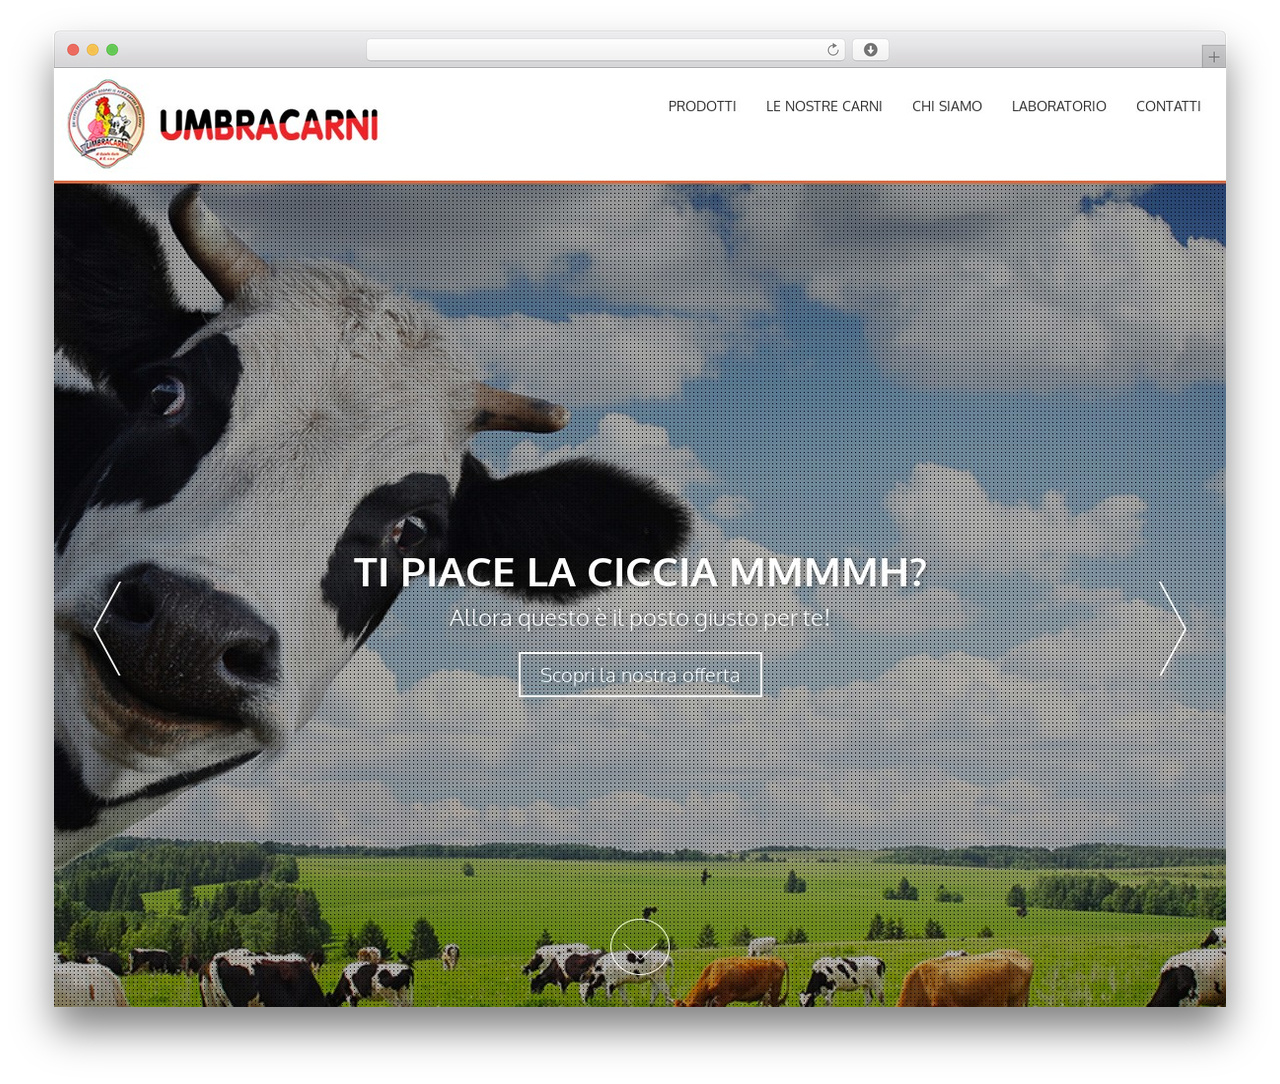 AccessPress Parallax WordPress theme free download - umbracarni.com